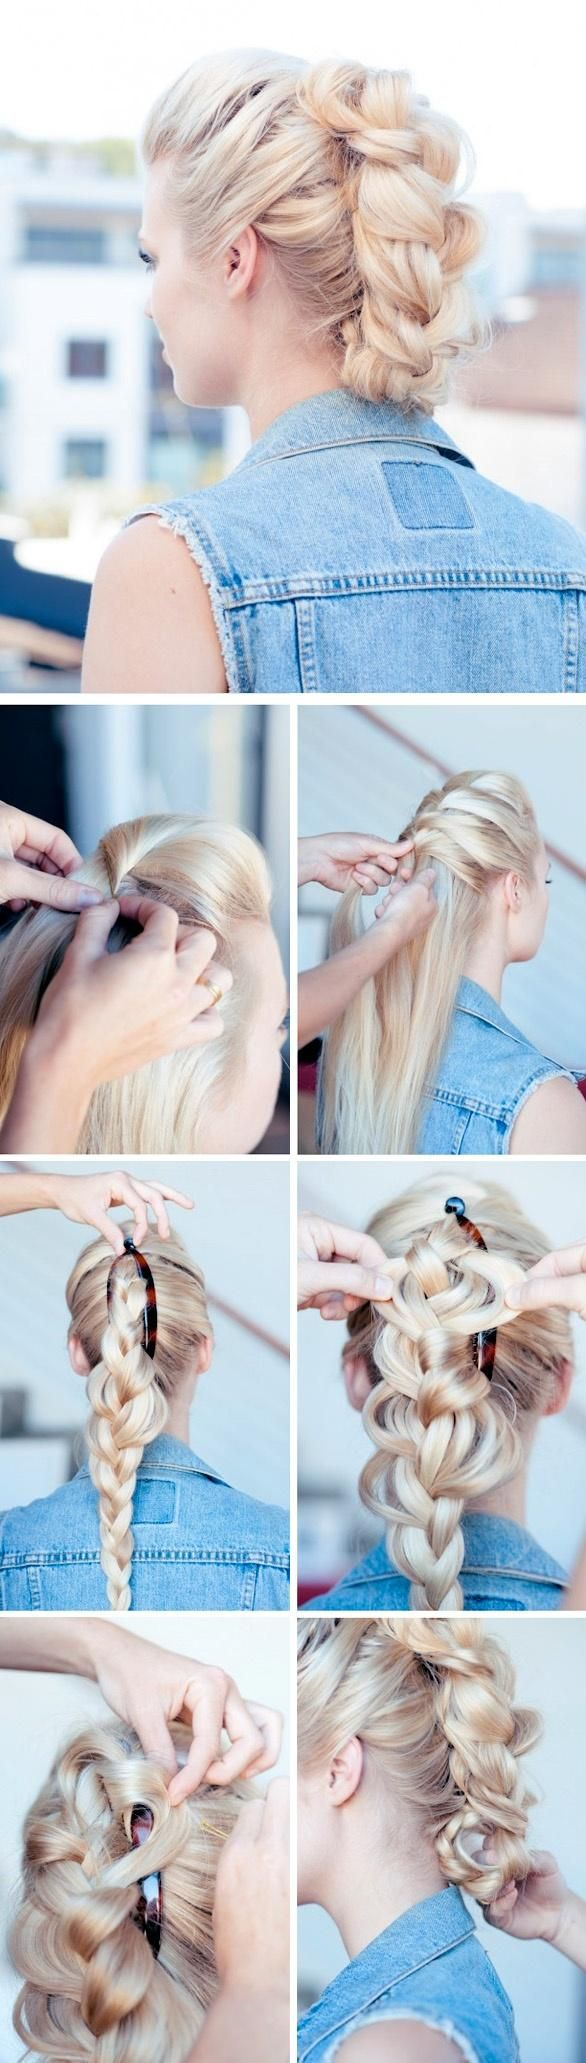 how to make hair styling 17 best ideas about banana clip hairstyles on 7907